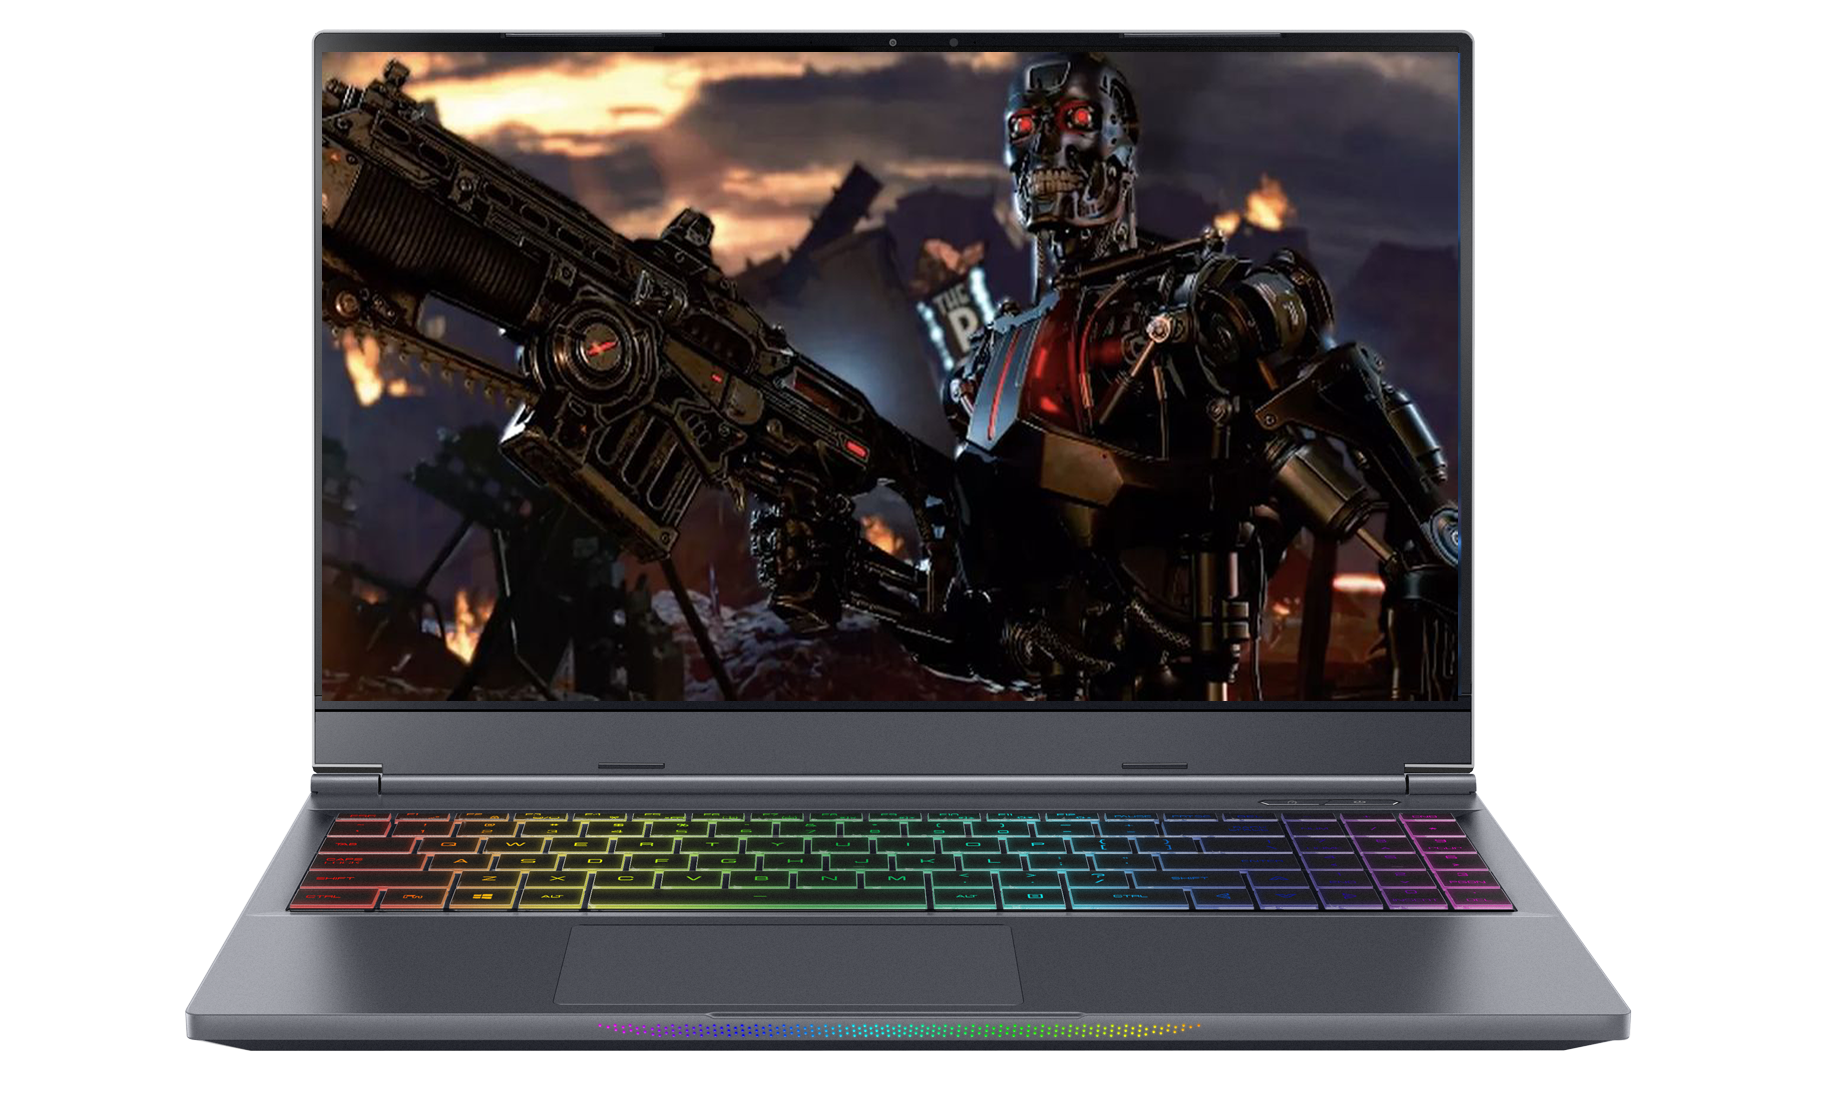 Front open 15.6 inch cad workstation gaming notebook / laptop XNB XNotebooks TERMINATOR TL15 ALU NVIDIA RTX 3060 / RTX 3070 / RTX 3080 CPU INTEL i7-11800H Tongfang GM5TG0W, GM5TN7W, GM5TN8Y